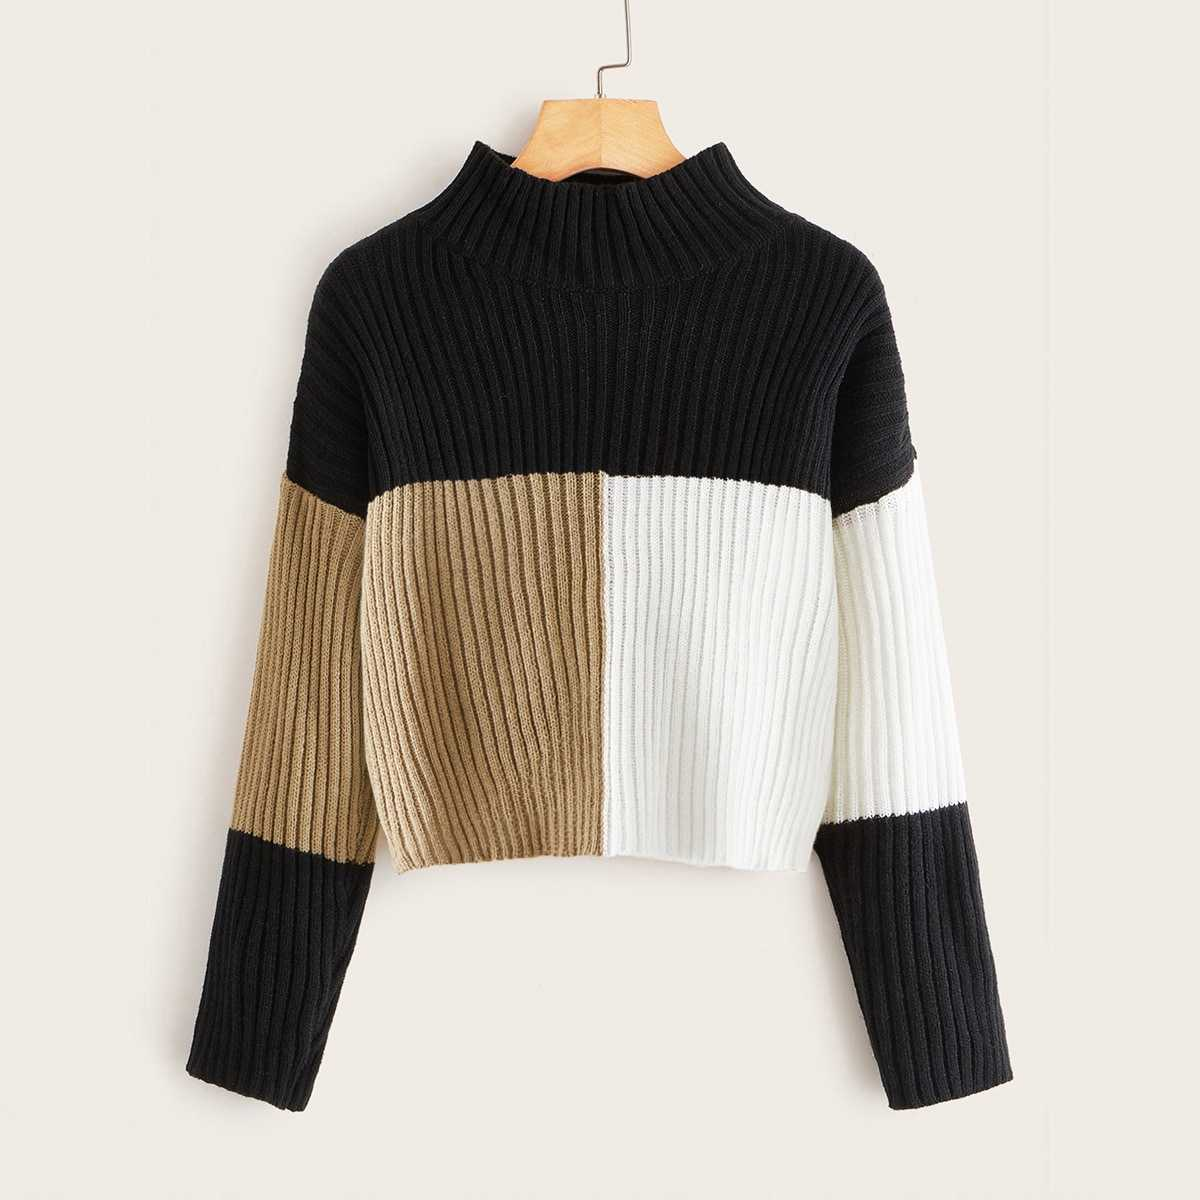 Cut and Sew Rib-knit Sweater in Multicolor by ROMWE on GOOFASH